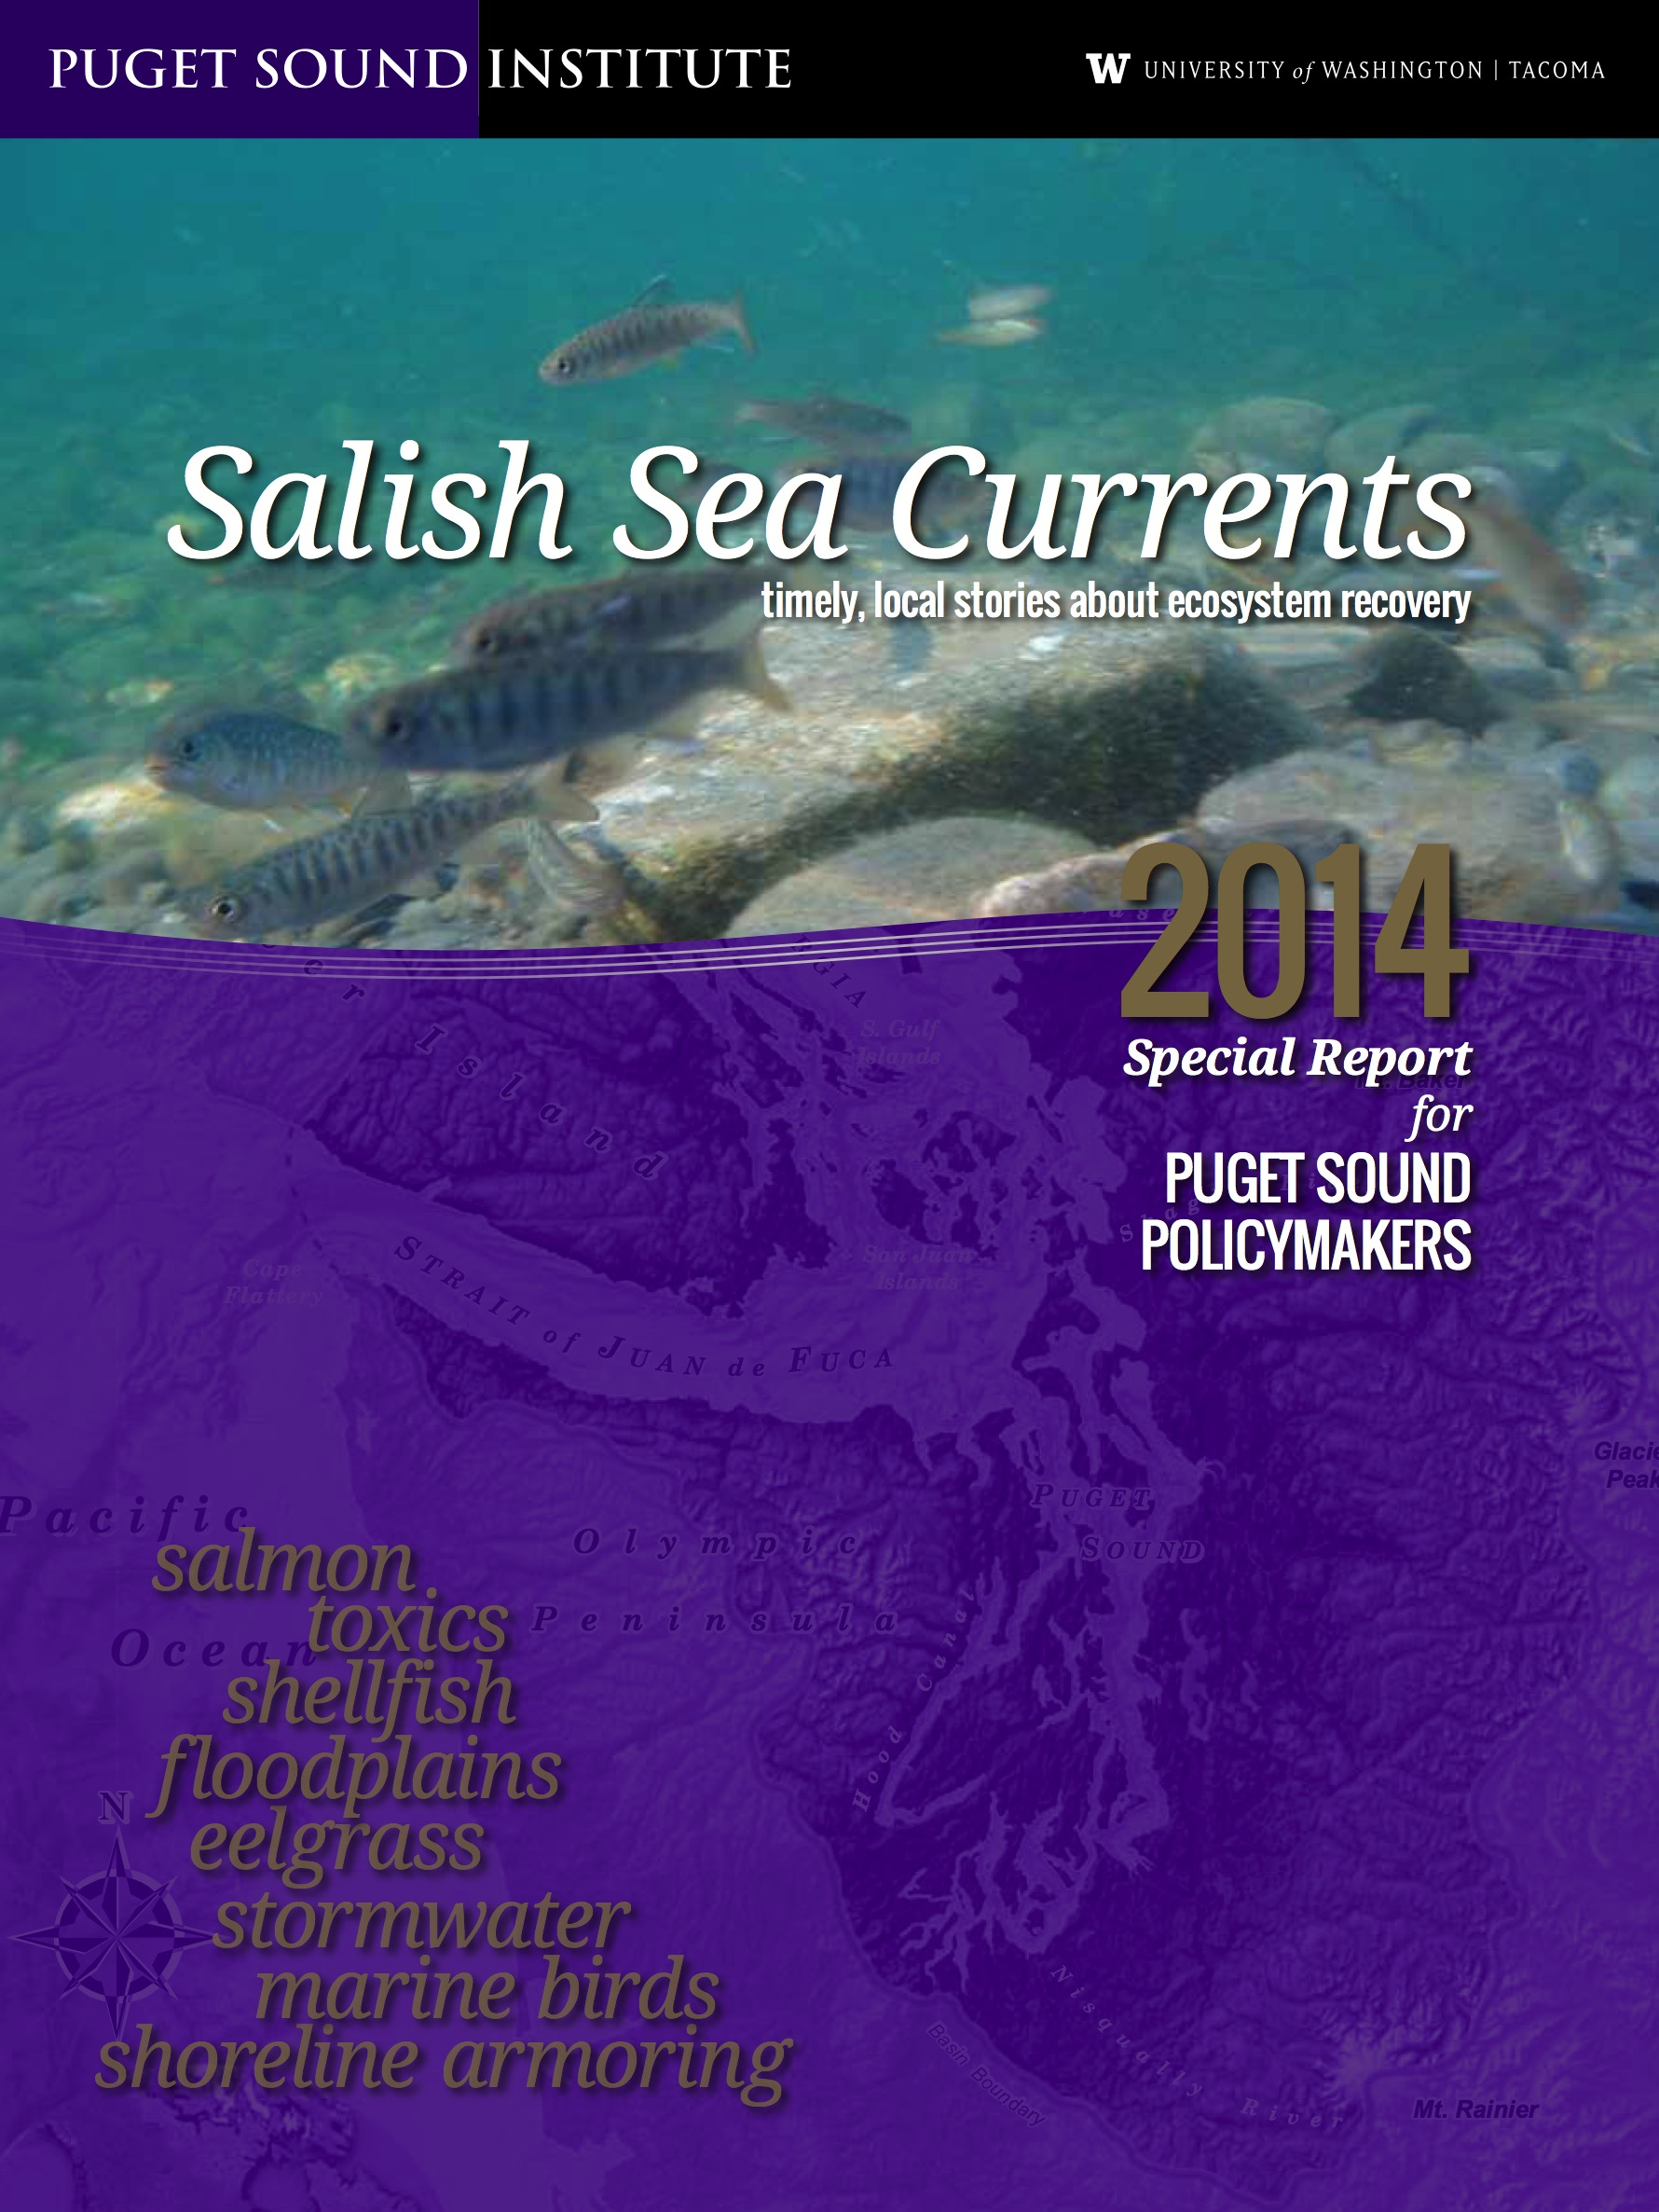 Salish Sea Currents magazine